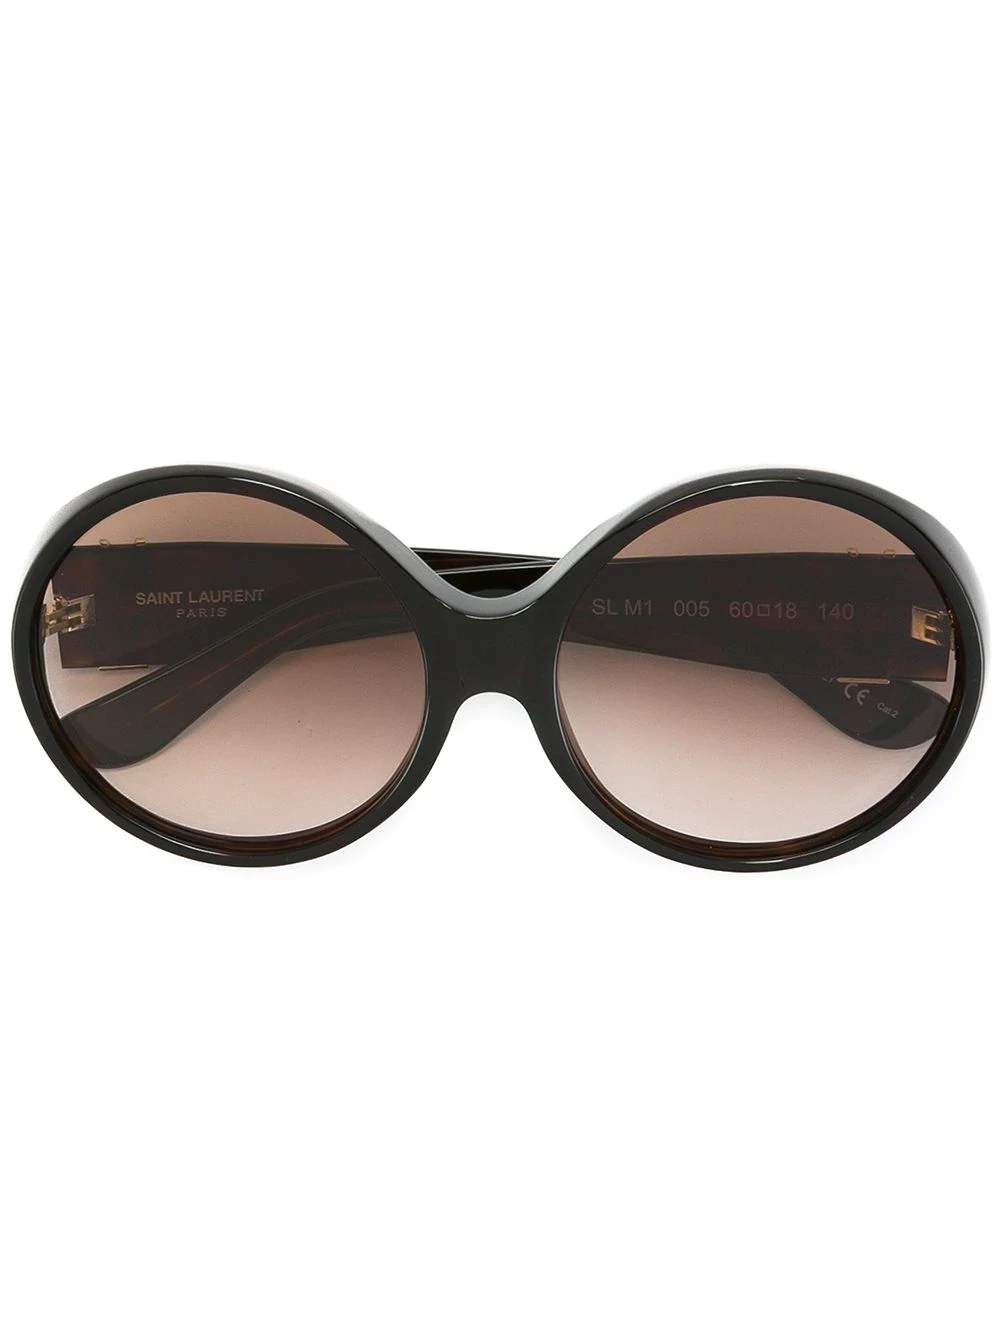 006e12e73ef Saint Laurent 'Sl M1 005' Sunglasses In Brown | ModeSens